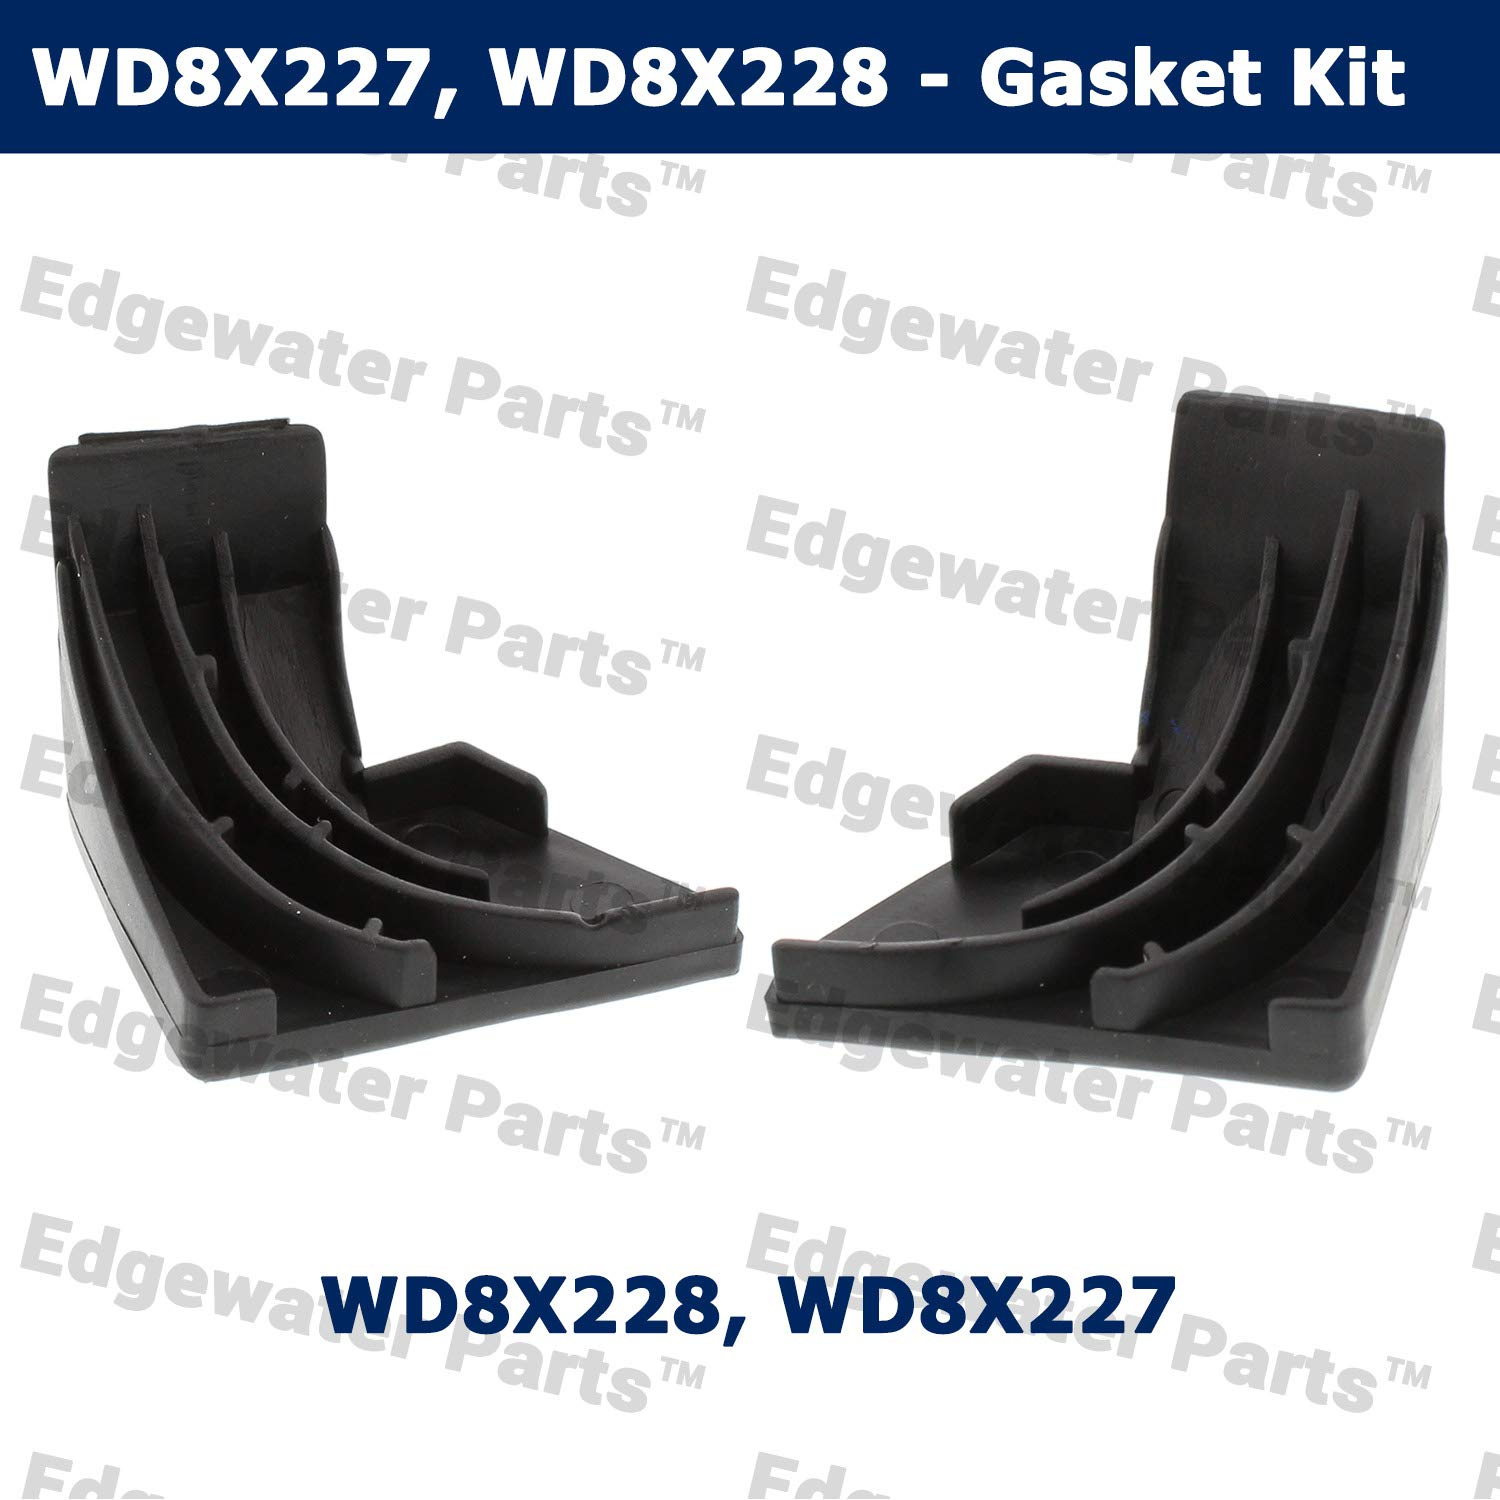 Edgewater Parts WD8X227, WD8X228 Lower Left and Lower Right Dishwasher Corner Baffle Gasket Kit Compatible With GE, Hotpoint, and Kenmore